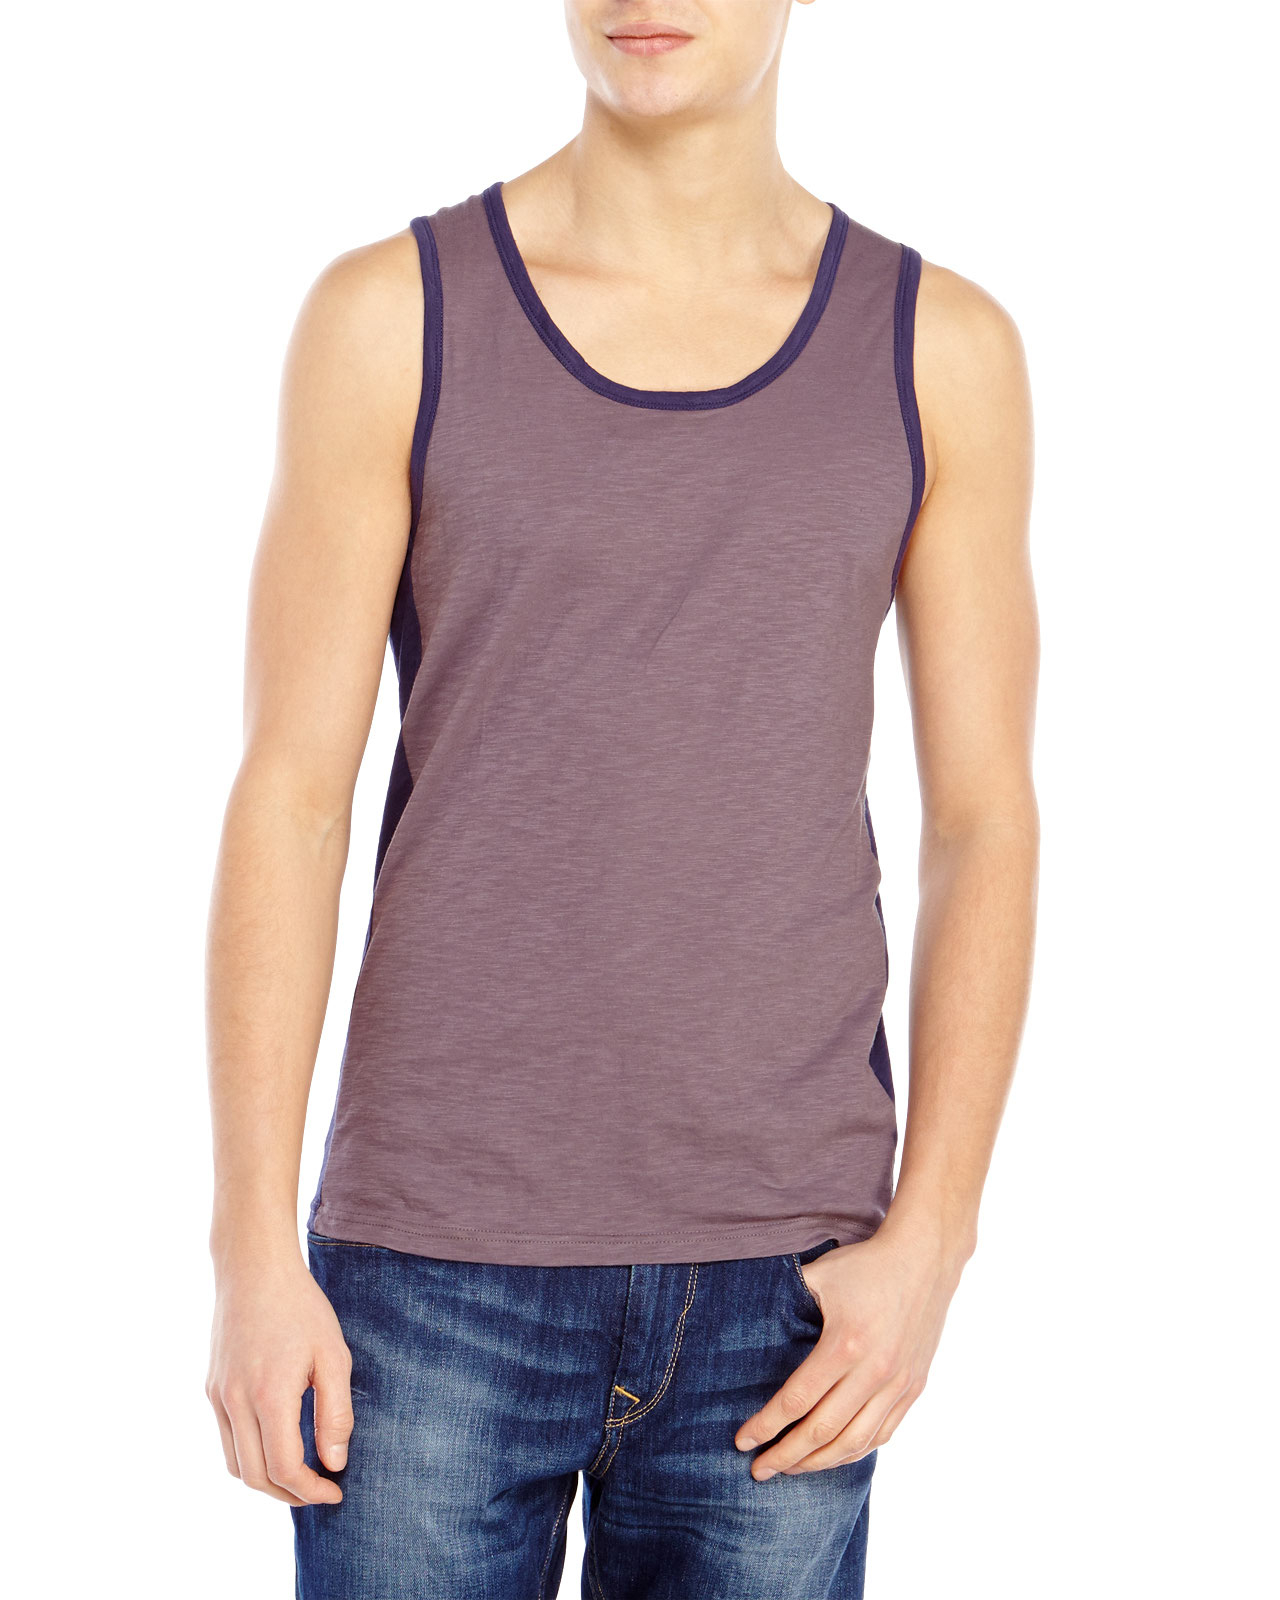 e15cad6426af1 Lyst - Shades of Grey by Micah Cohen Color Block Tank in Gray for Men